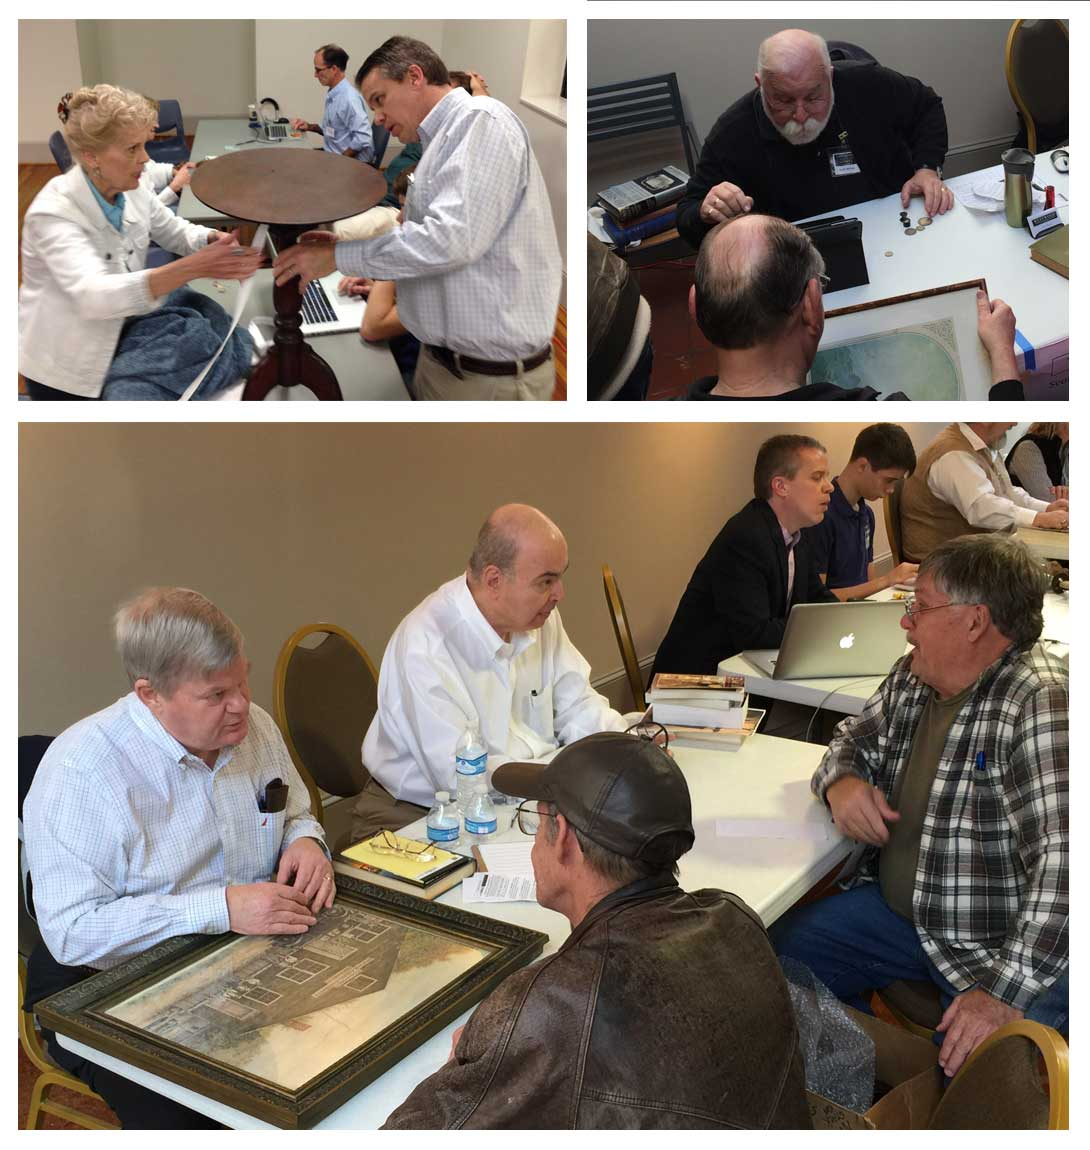 Appraisers in action. Join us for the Antique Appraisal Fair April 1, 2017